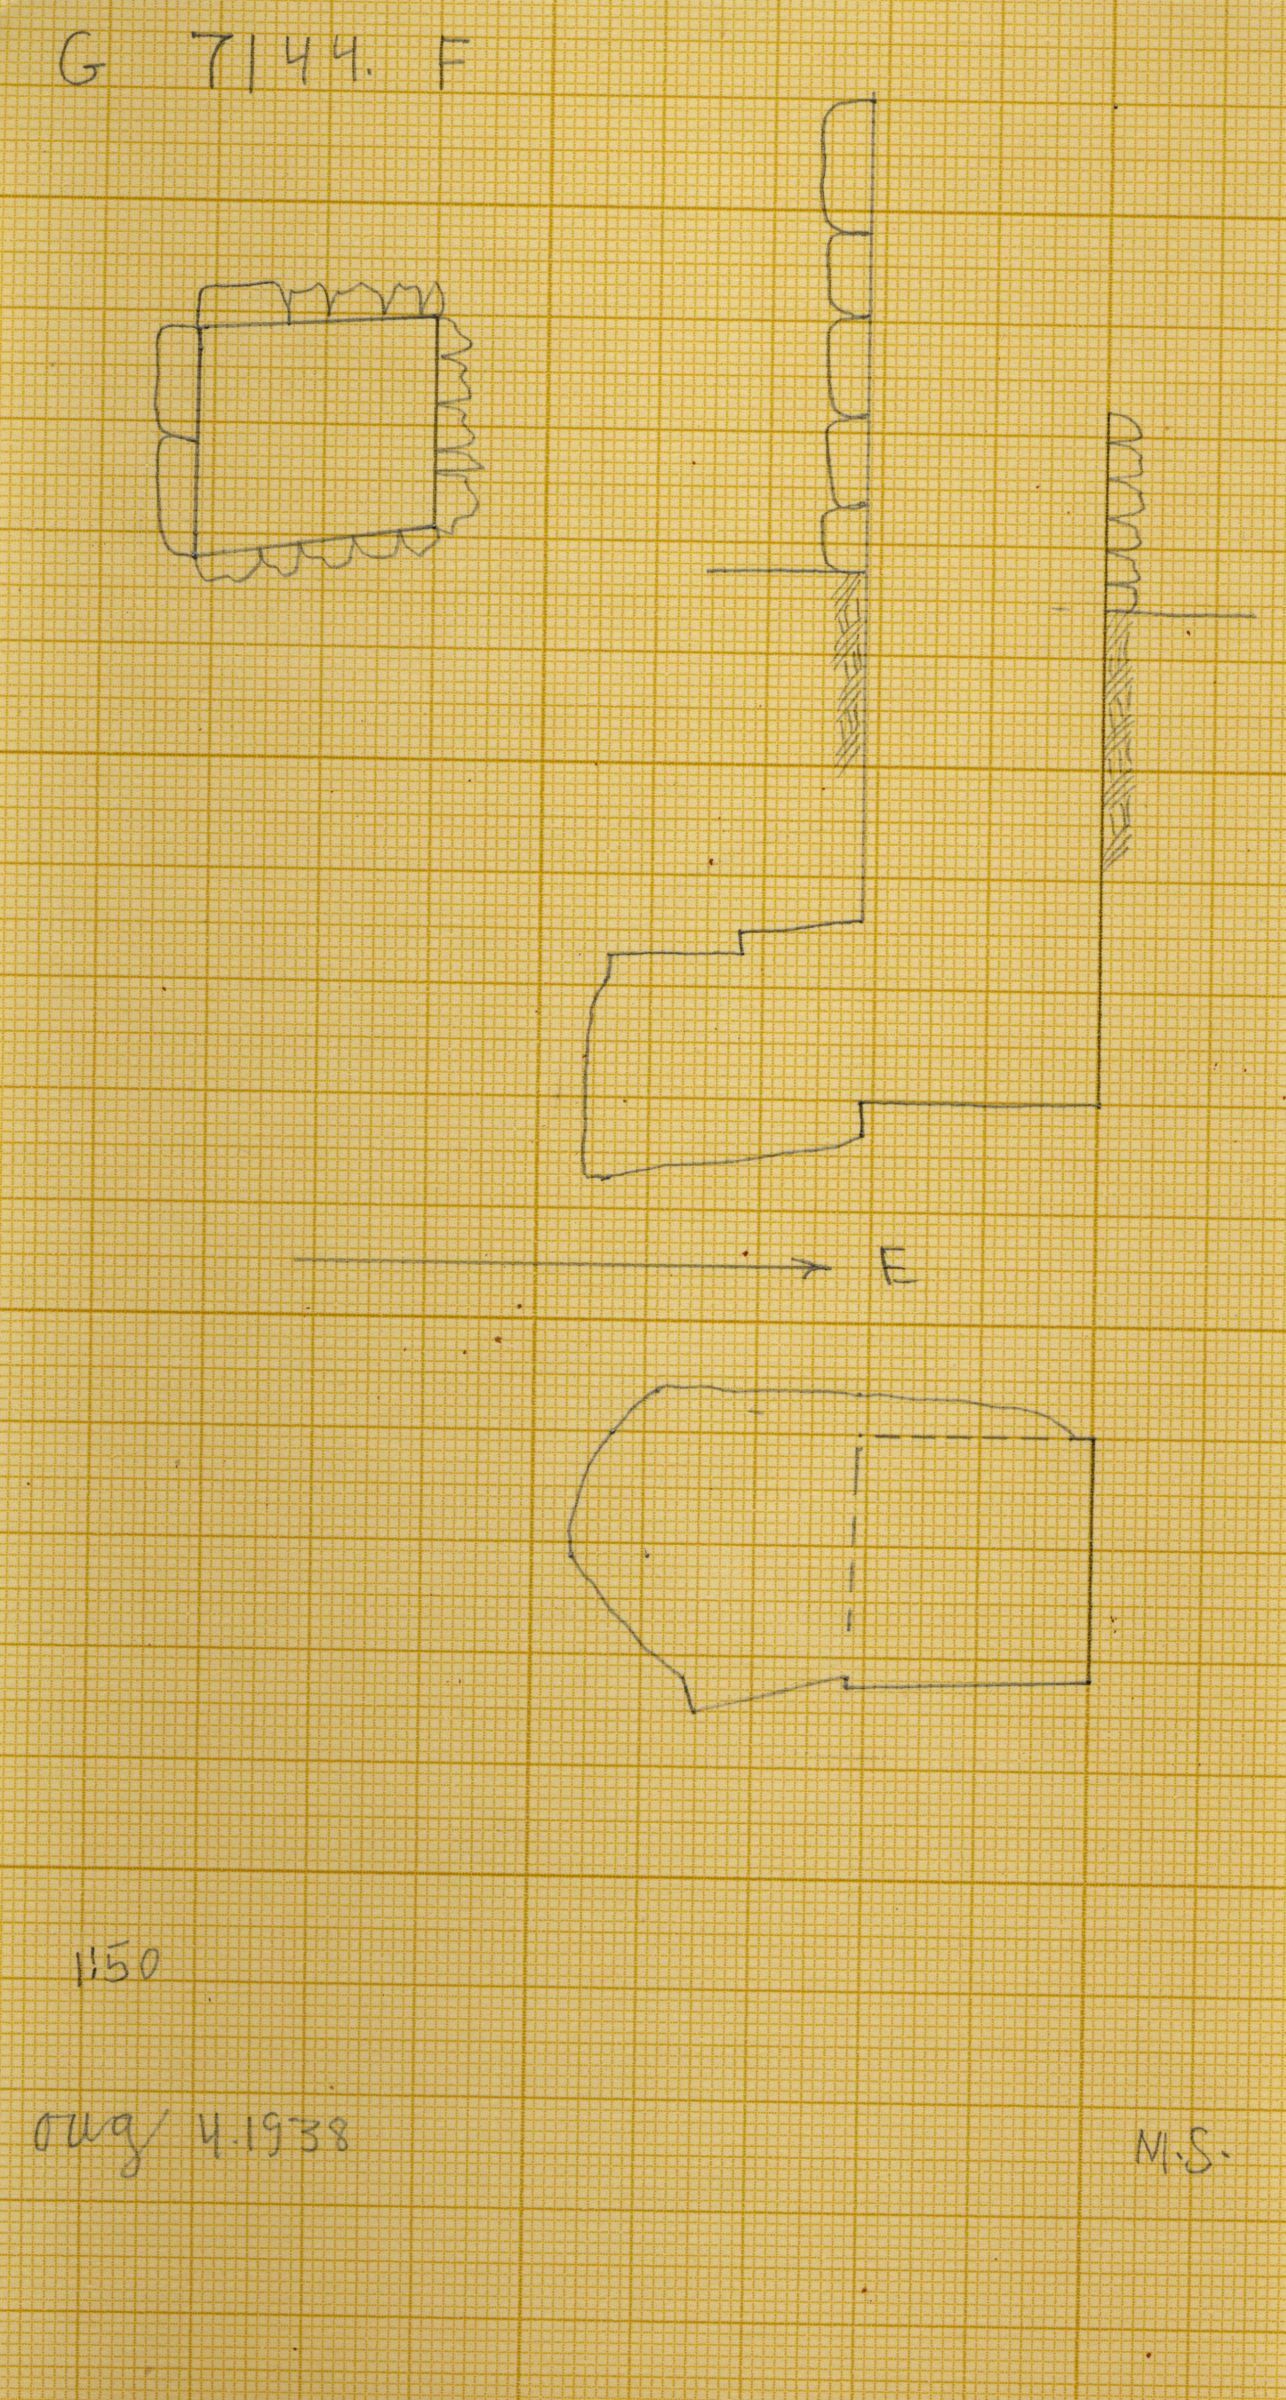 Maps and plans: G 7144, Shaft F